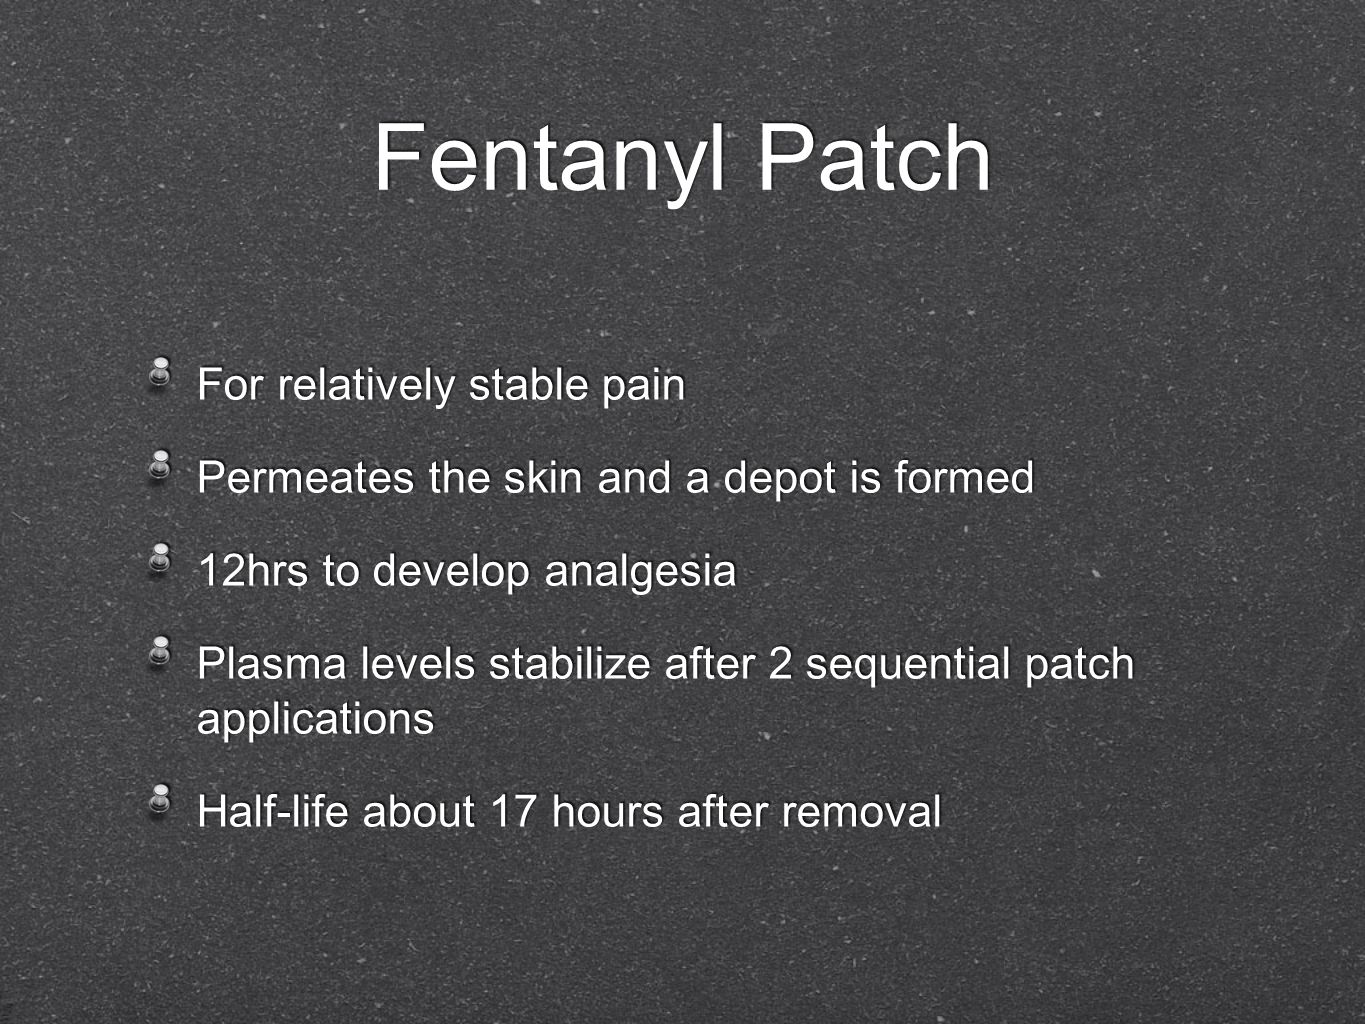 Fentanyl Patch For relatively stable pain